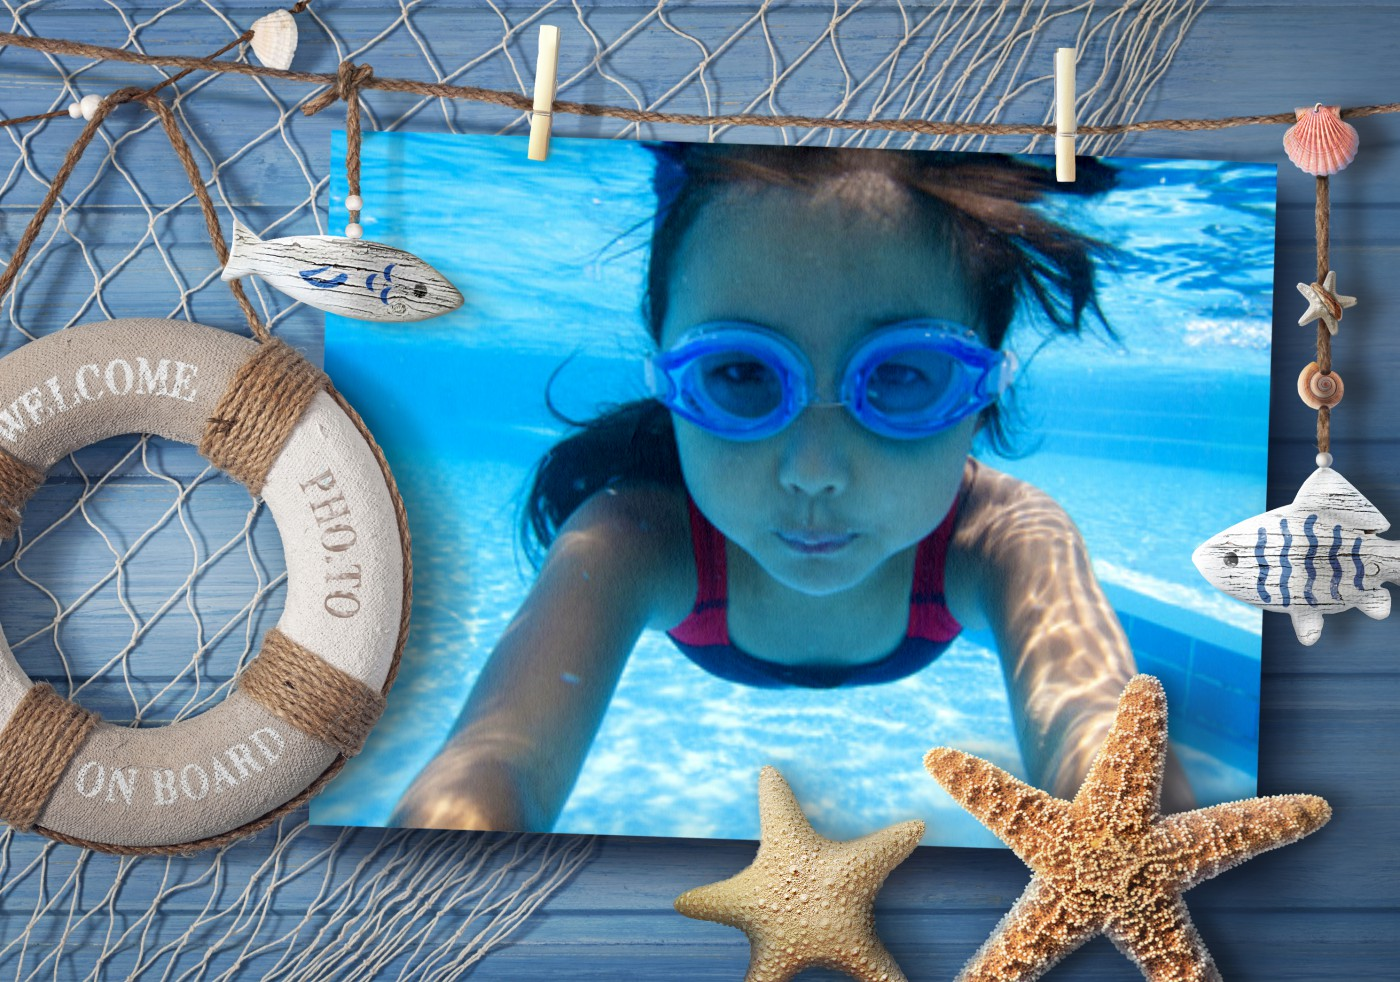 Creative way to adorn your sea vacation photo: online nautical photo frame.